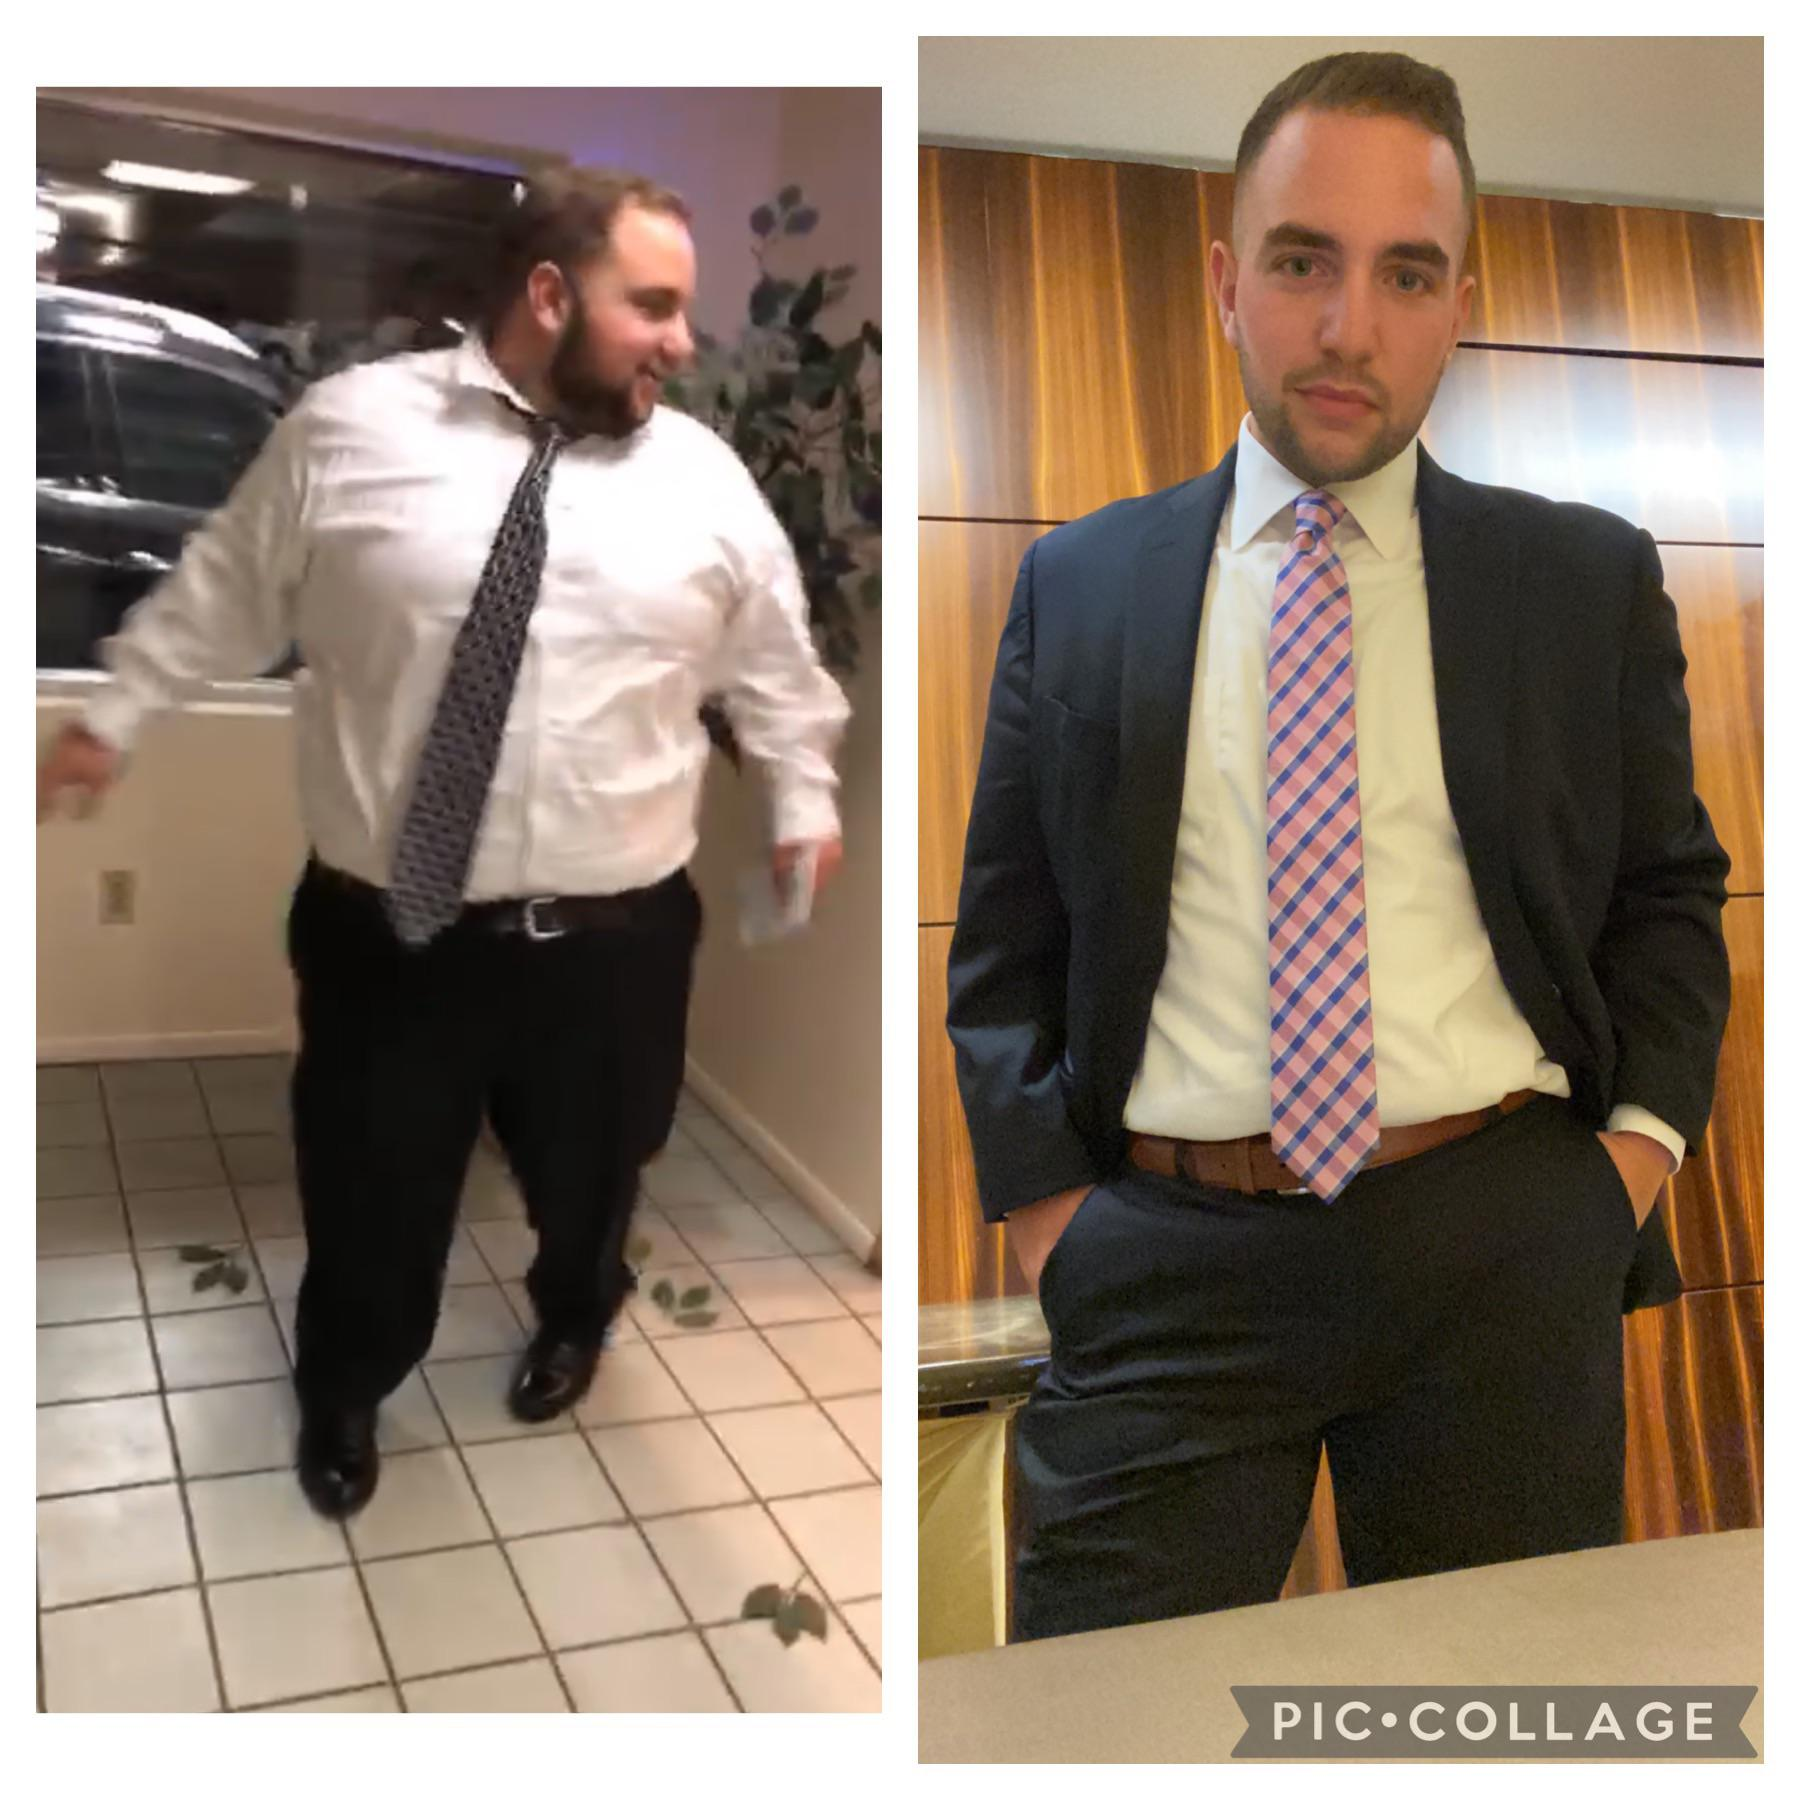 5 foot 10 Male 172 lbs Weight Loss Before and After 384 lbs to 212 lbs